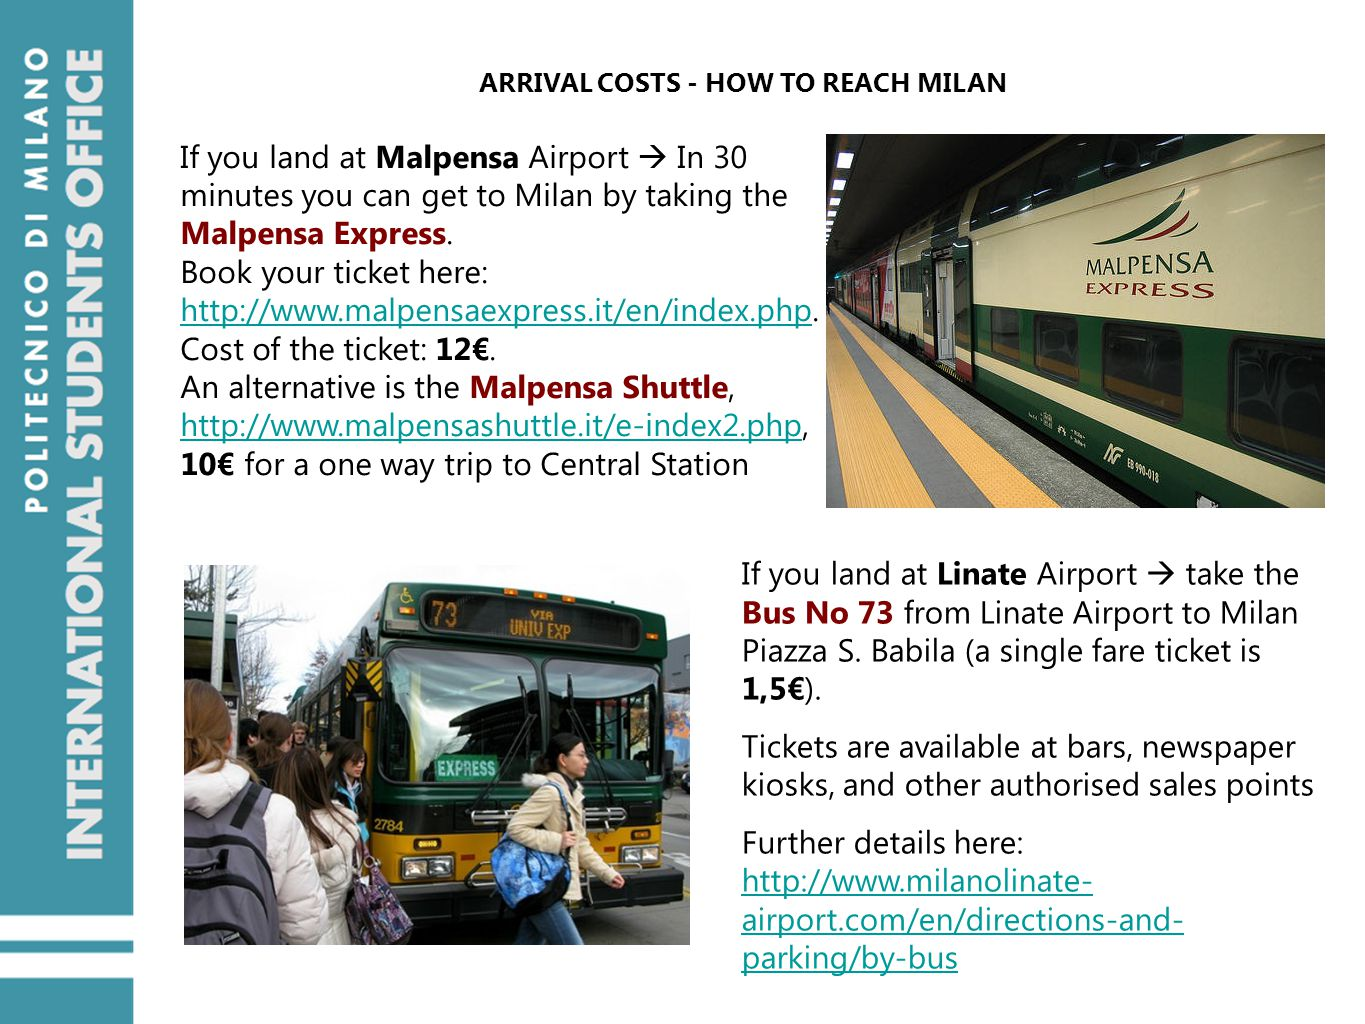 ARRIVAL COSTS - HOW TO REACH MILAN If you land at Malpensa Airport  In 30 minutes you can get to Milan by taking the Malpensa Express.